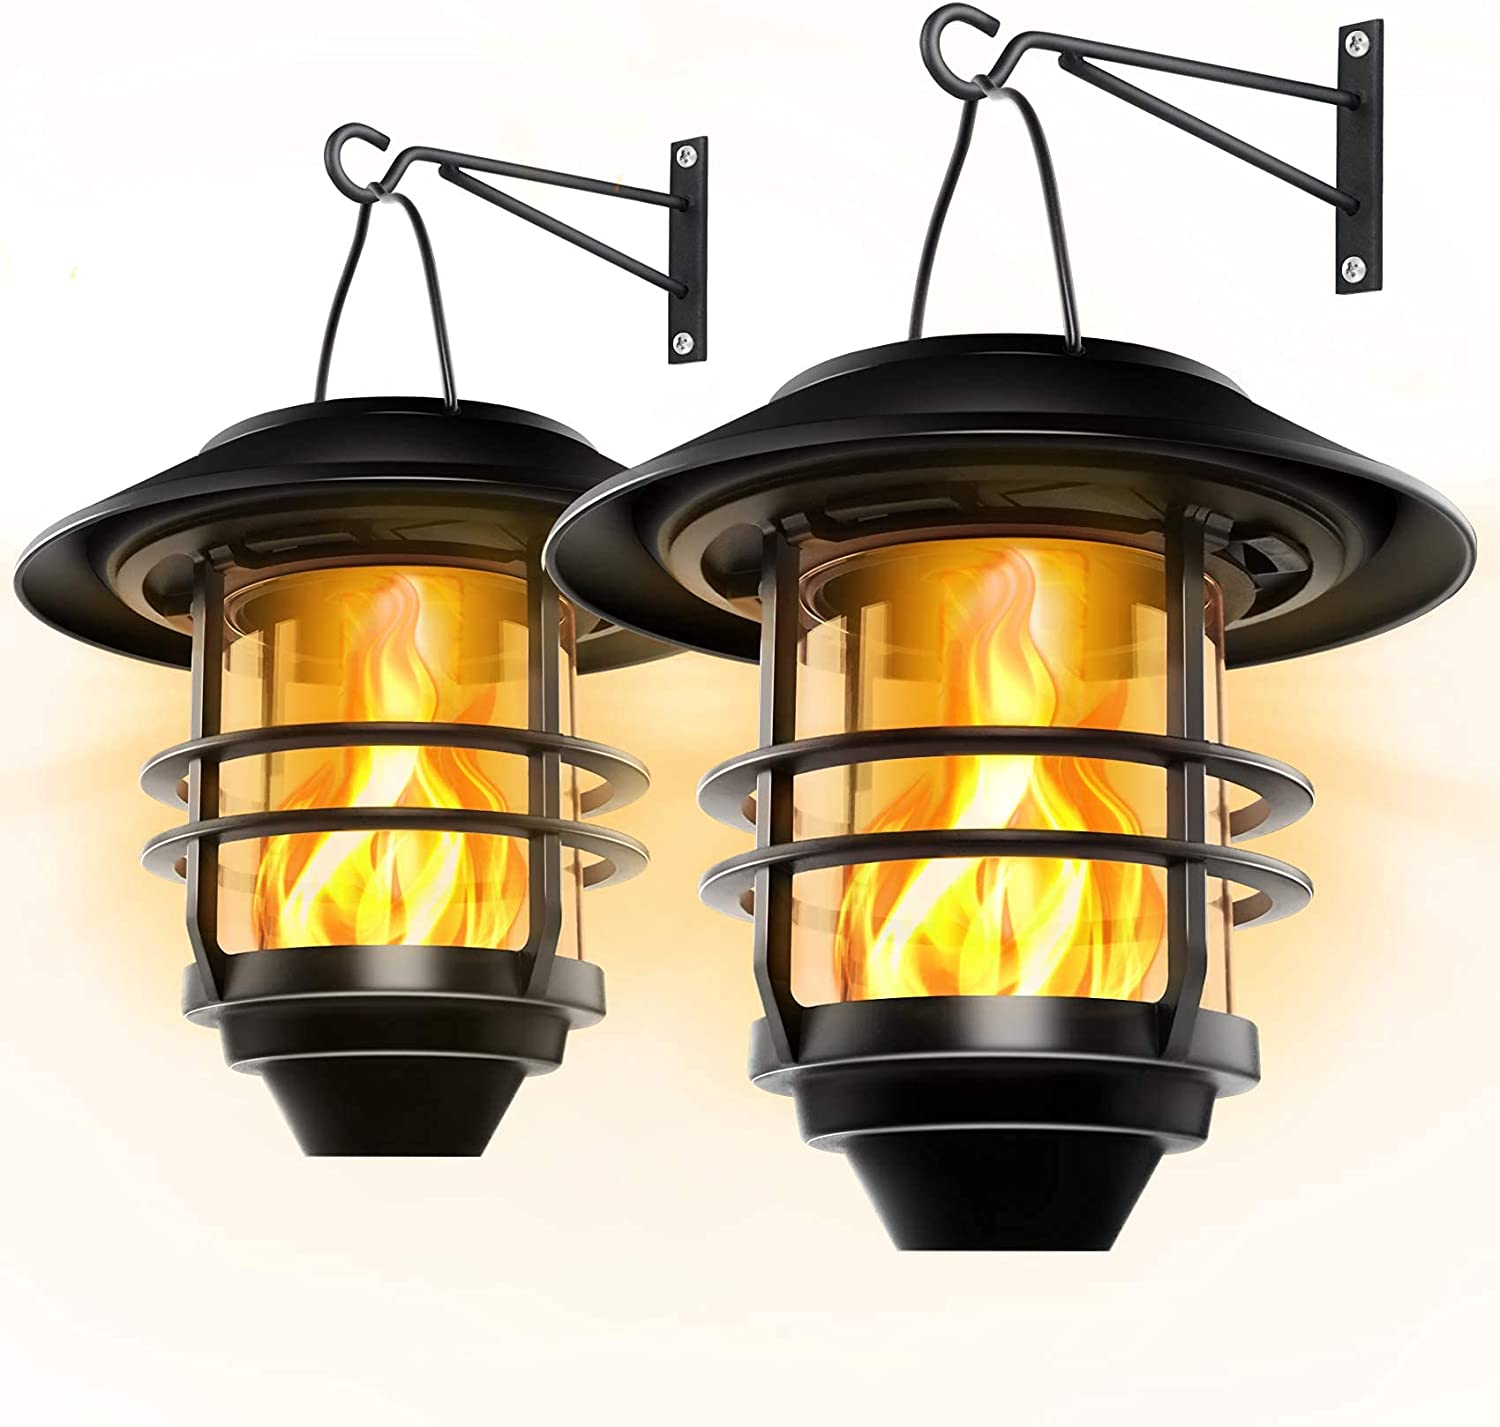 Otdair Solar Wall Lantern Outdoor, Flickering Flames Solar Sconce Lights Outdoor, Hanging Solar Lamps Wall Mount for Front Porch, Patio and Yard, 2 Pack